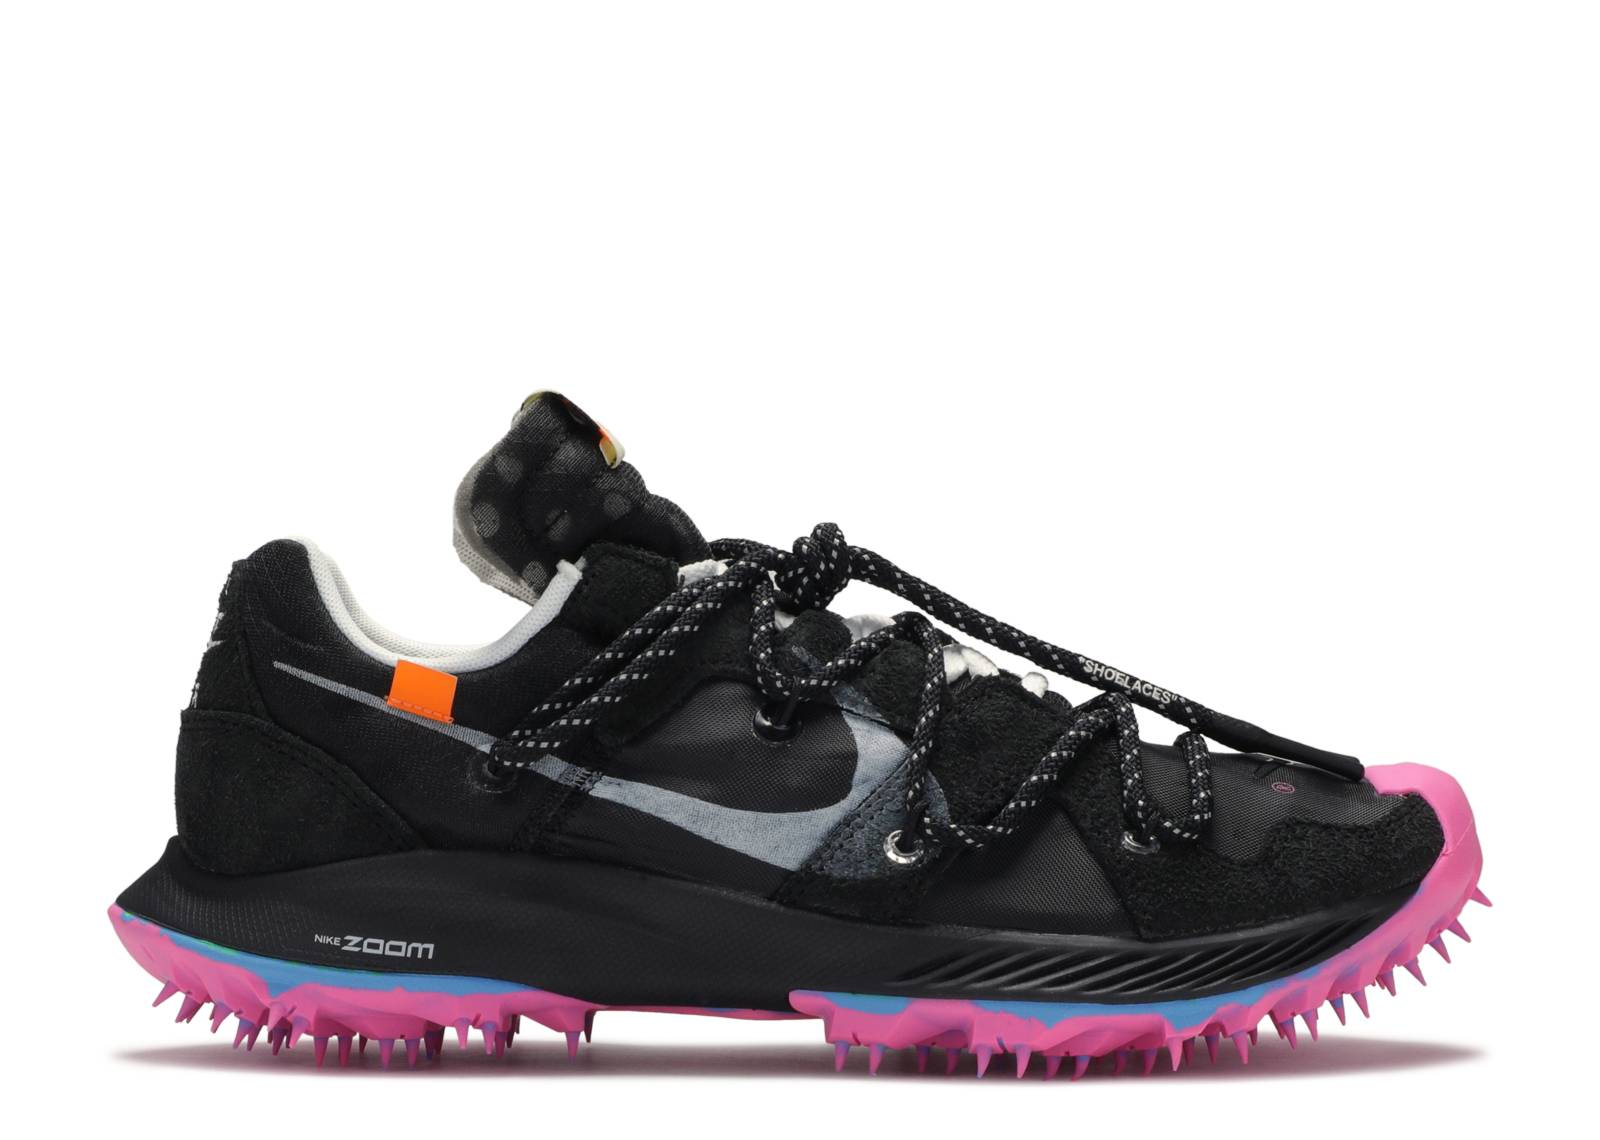 store good best deals on w nike zoom terra kiger 5/ow